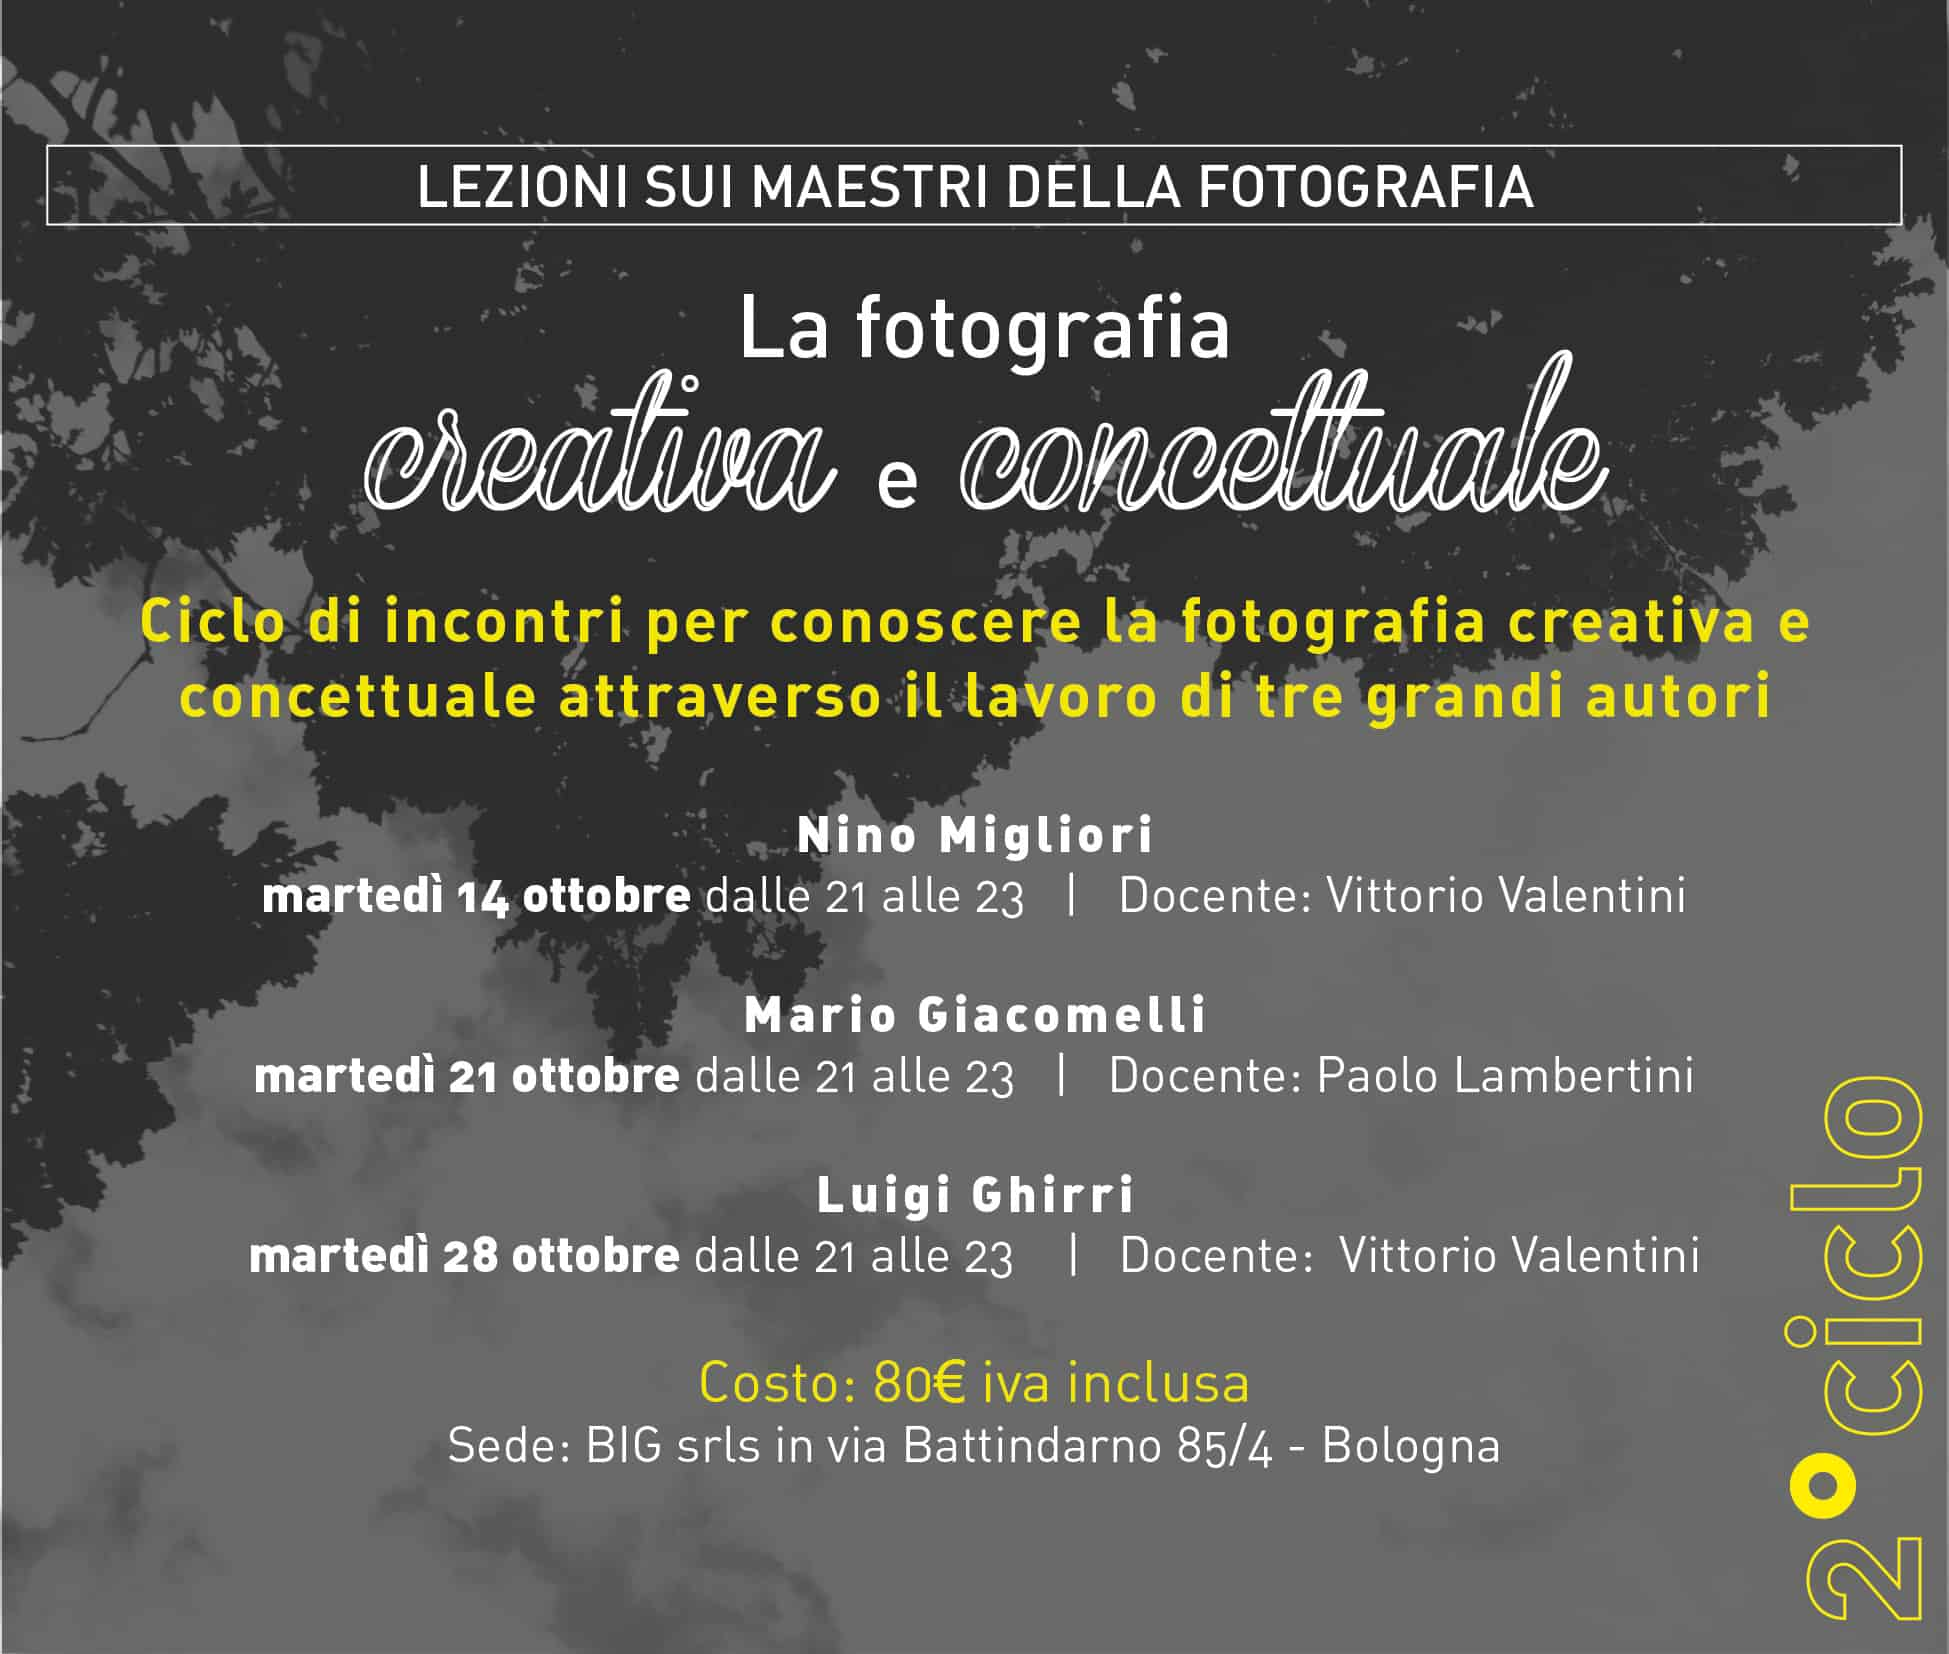 FotoCreativaConcettuale